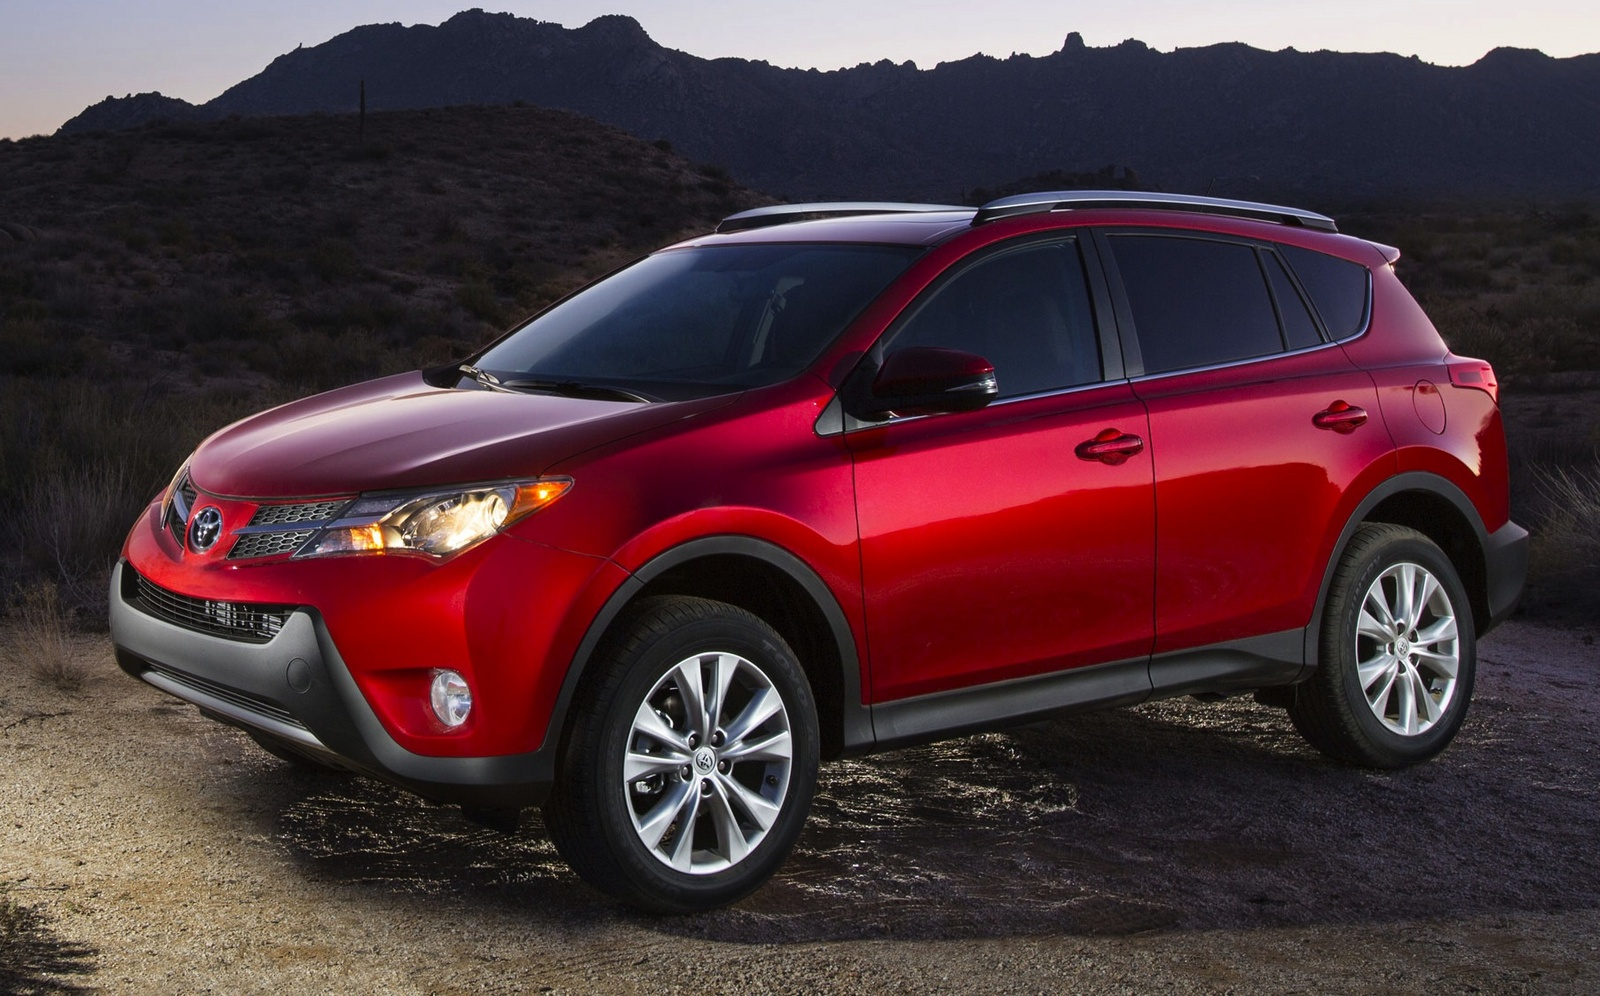 2015 toyota rav4 test drive review cargurus. Black Bedroom Furniture Sets. Home Design Ideas